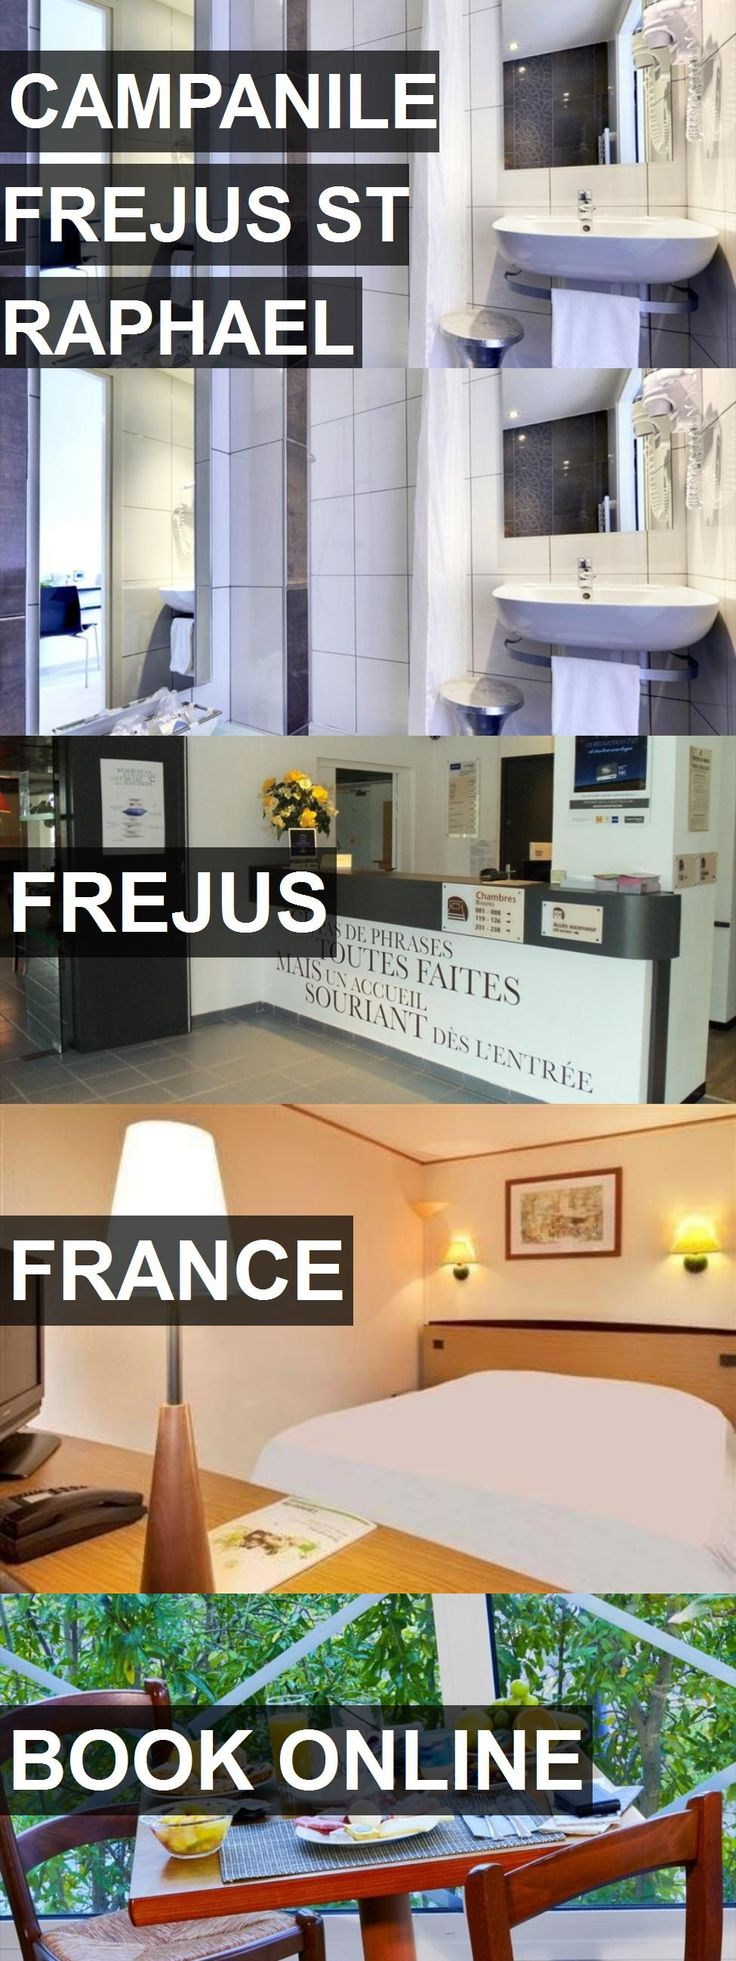 Hotel CAMPANILE FREJUS ST RAPHAEL in Frejus, France. For more information, photos, reviews and best prices please follow the link. #France #Frejus #hotel #travel #vacation